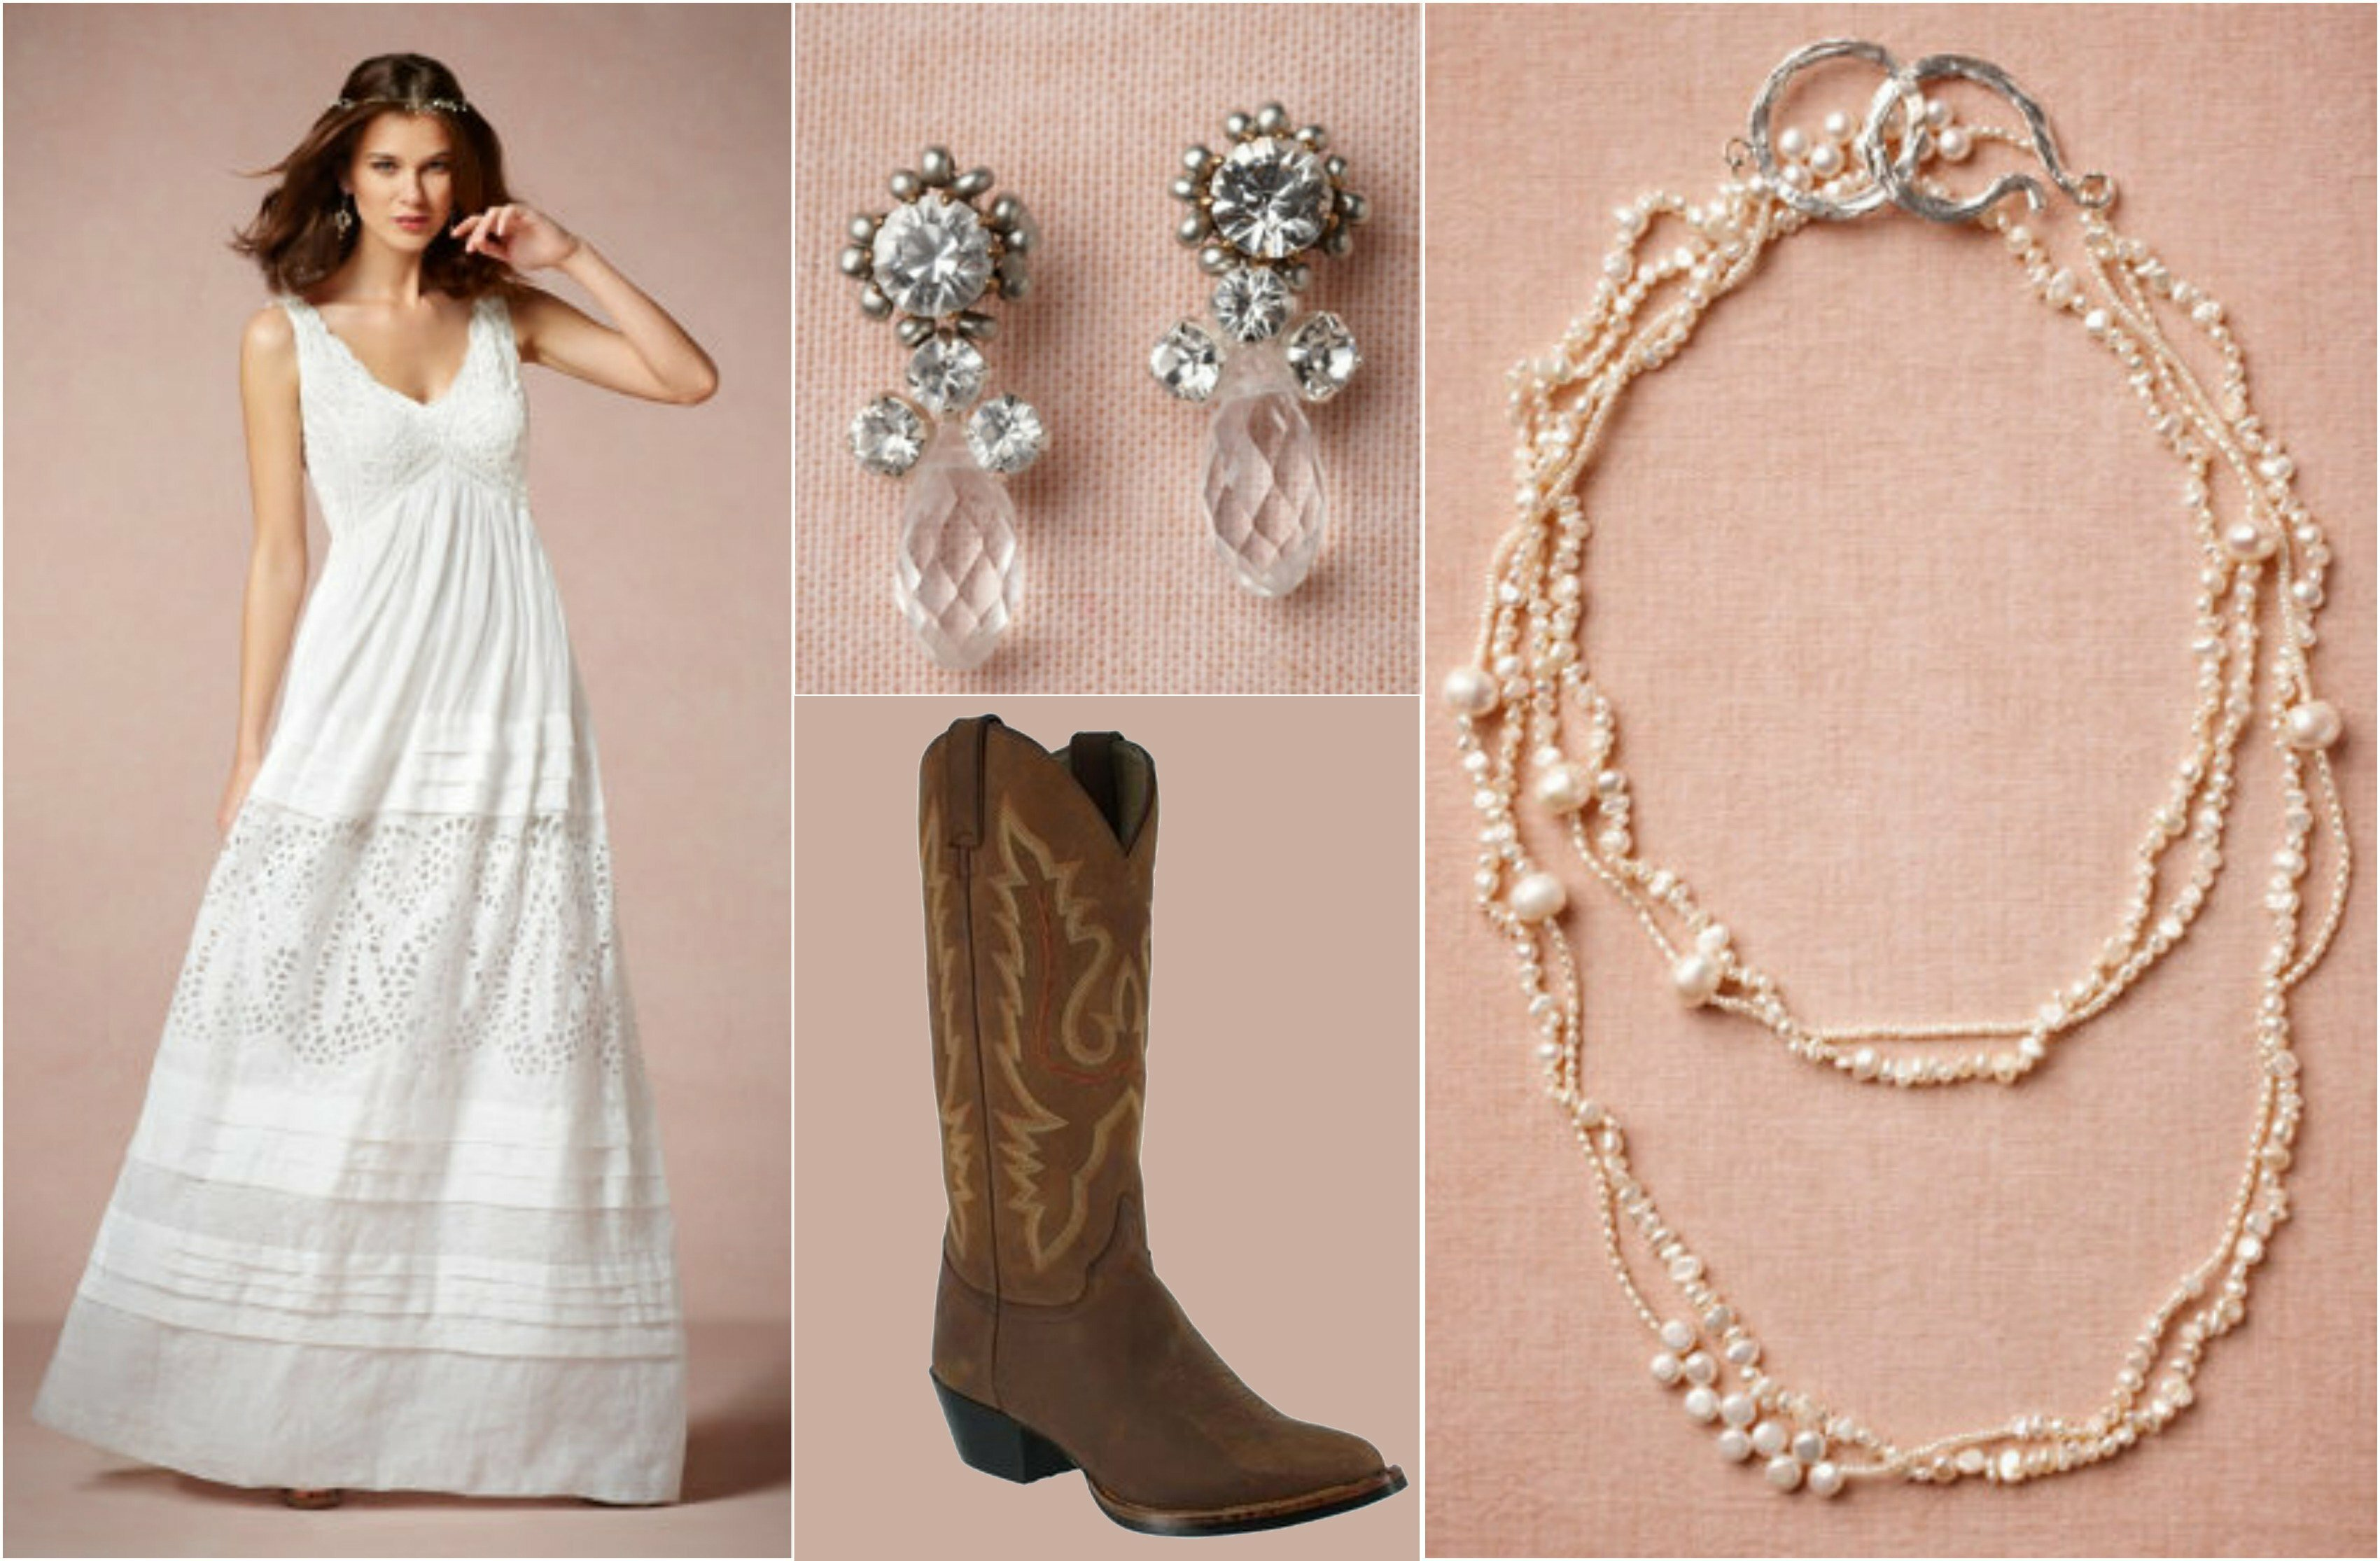 Western wedding dresses with boots pictures ideas guide to western wedding dresses with boots pictures ideas guide to buying stylish wedding dresses ombrellifo Image collections